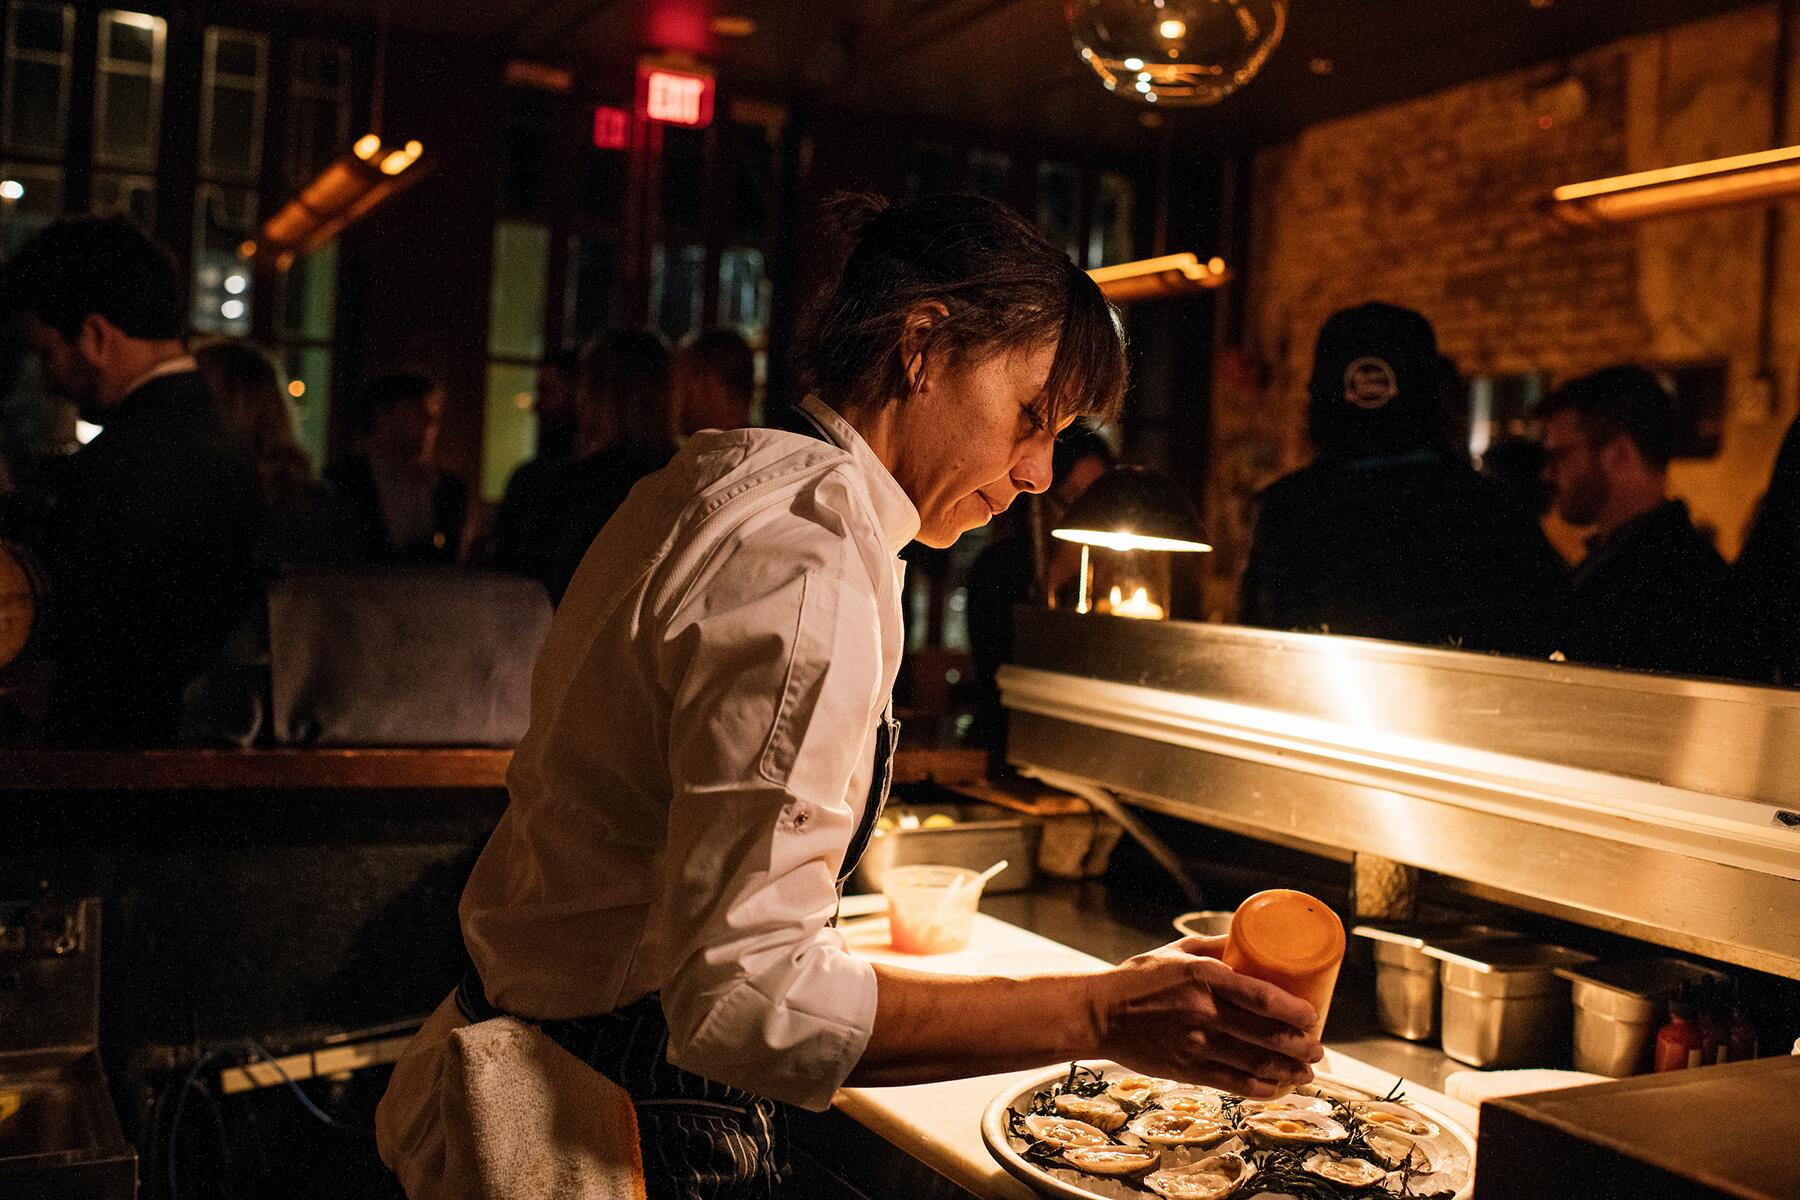 The Journey That Led Chef Nina Compton to Open One of New Orleans' Most Acclaimed Restaurants